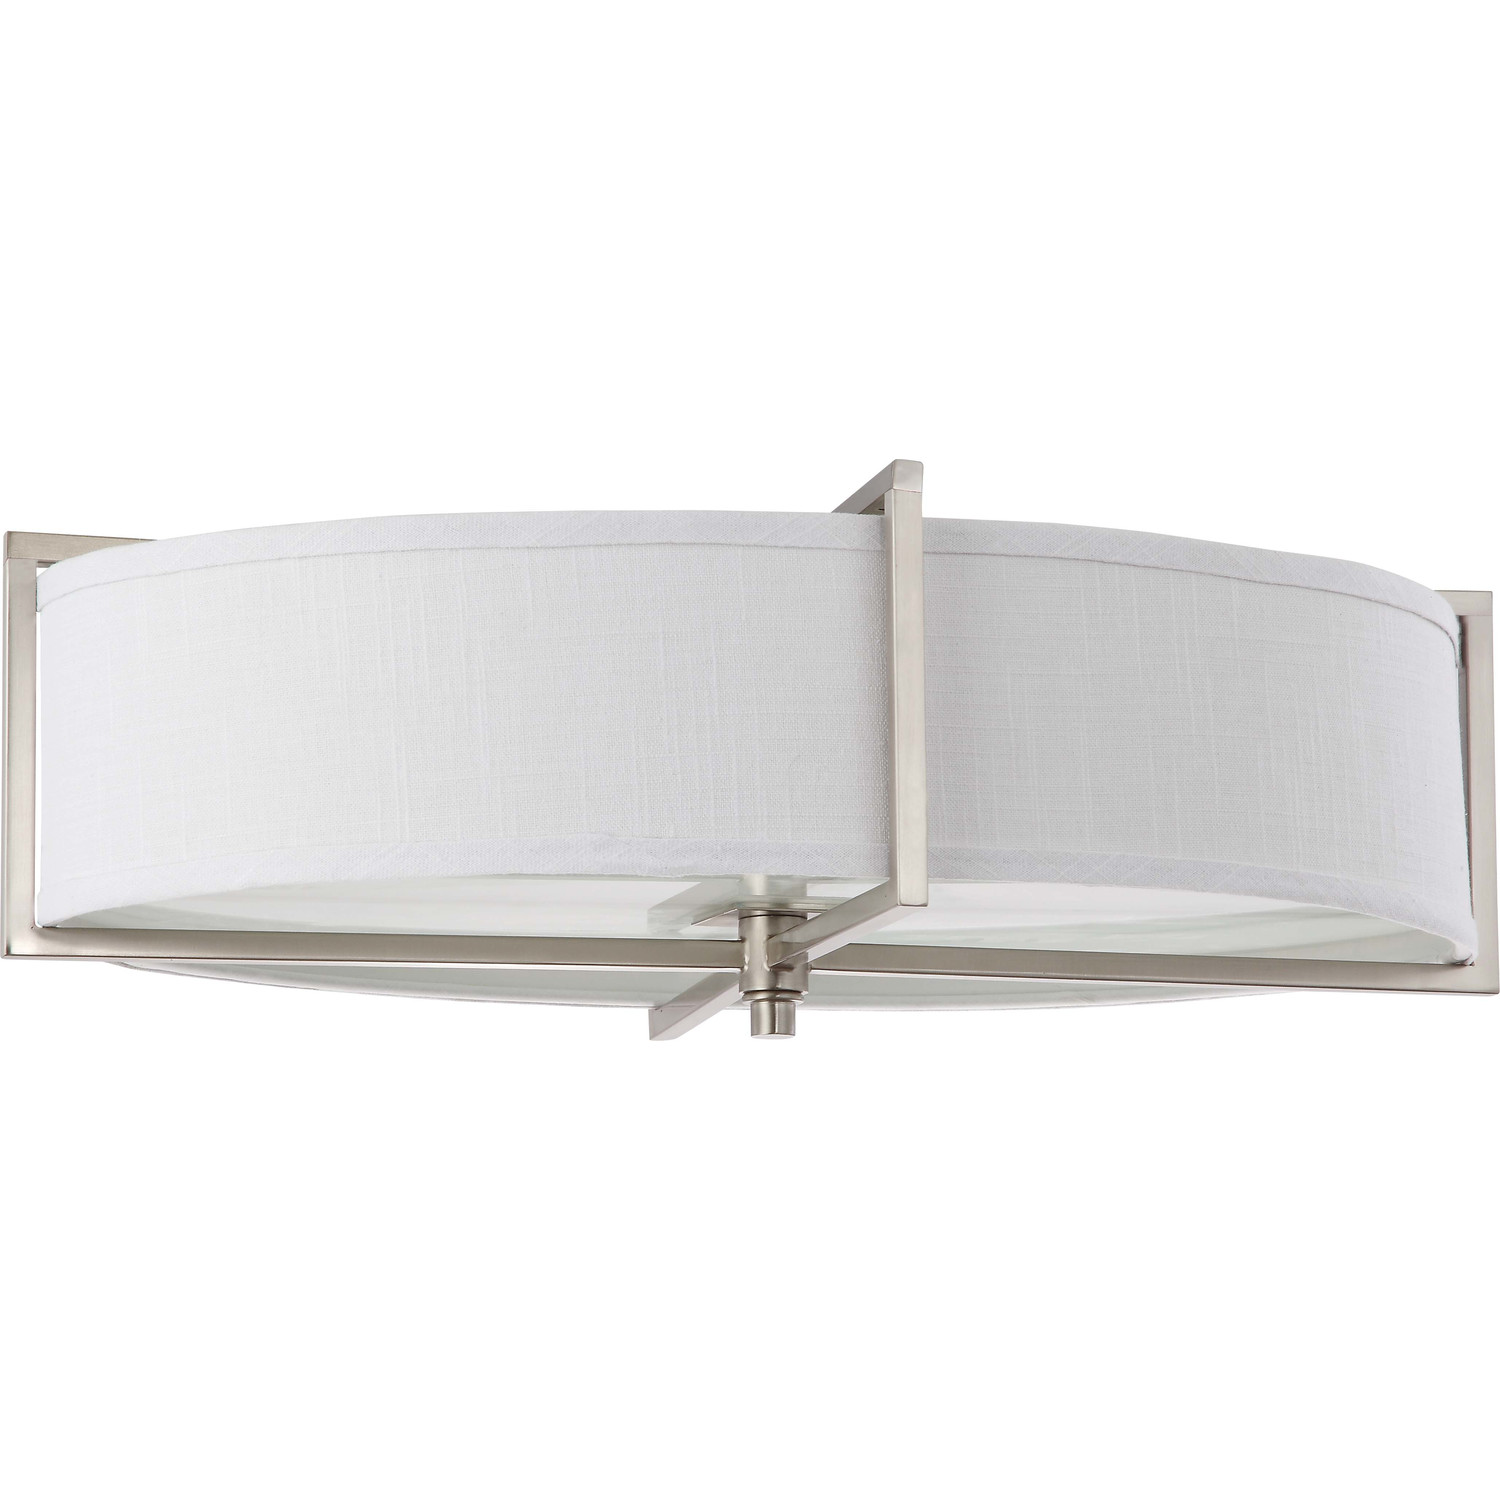 Cozy Nuvo Lighting In Stylish Design For Home Lighting Ideas: Chic Nuvo Lighting Portia Six Light Flush Mount Energy Star For Home Lighting Ideas